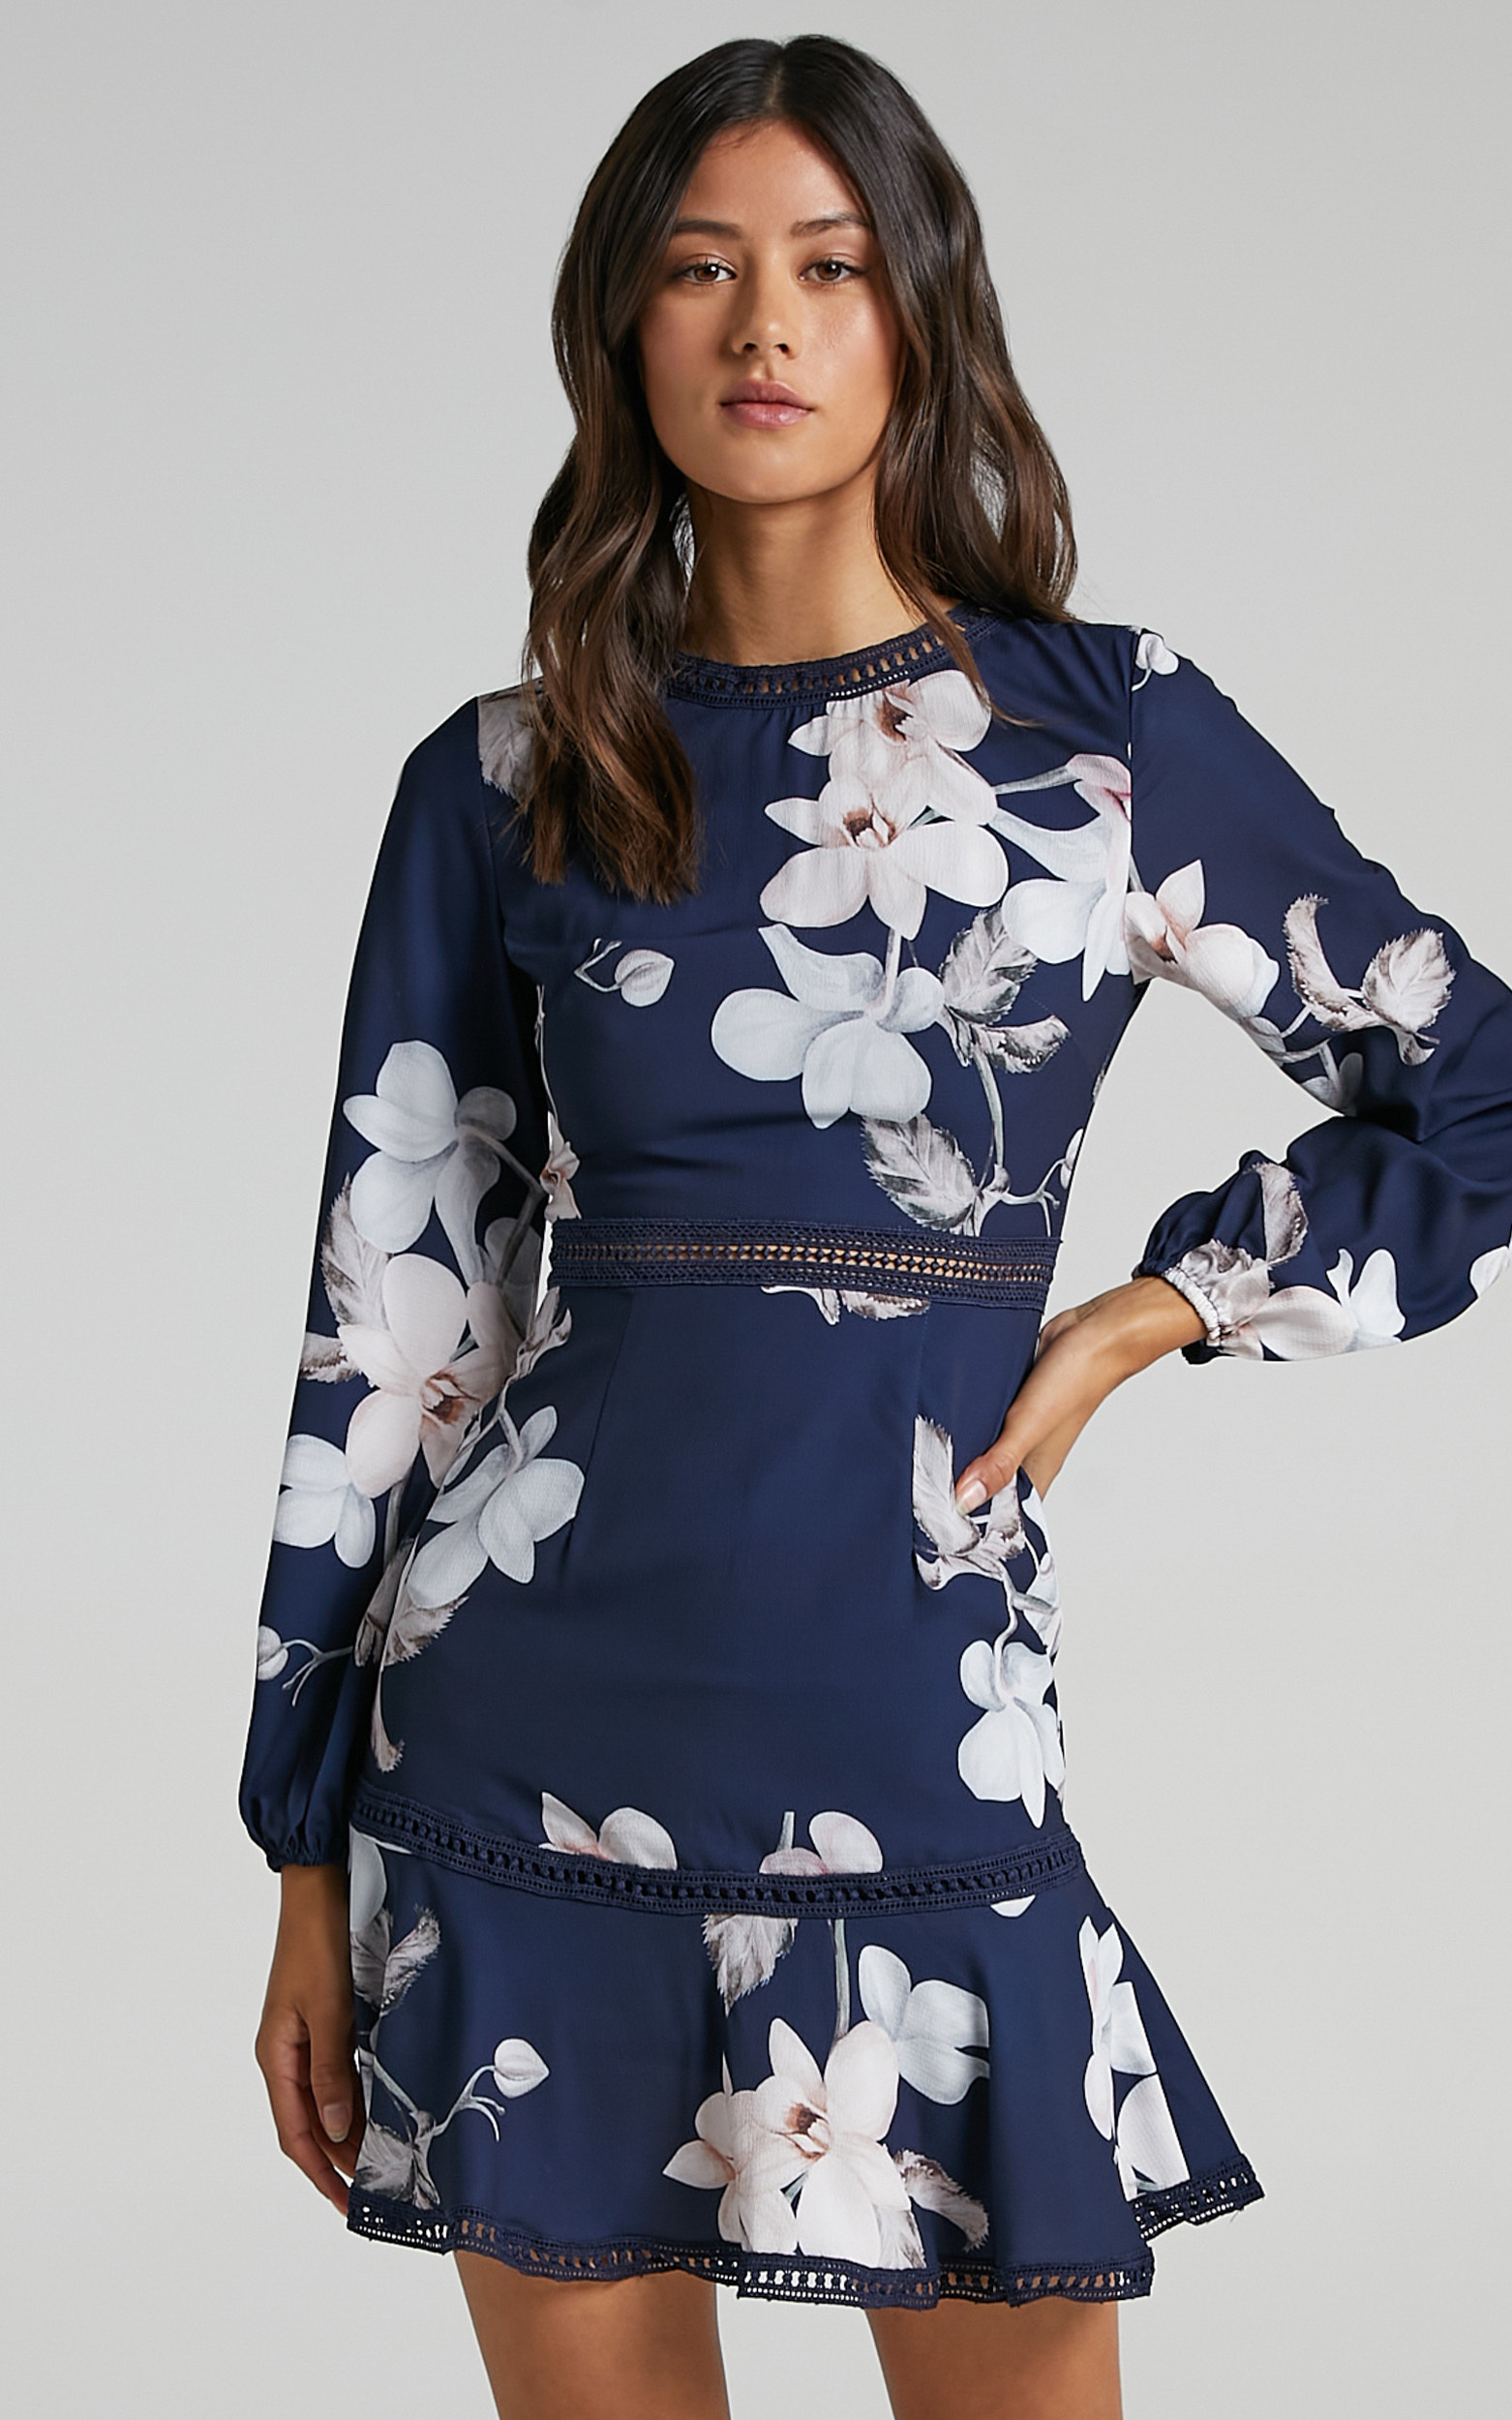 Not Missing Out Dress in Navy Floral - 16, NVY1, hi-res image number null